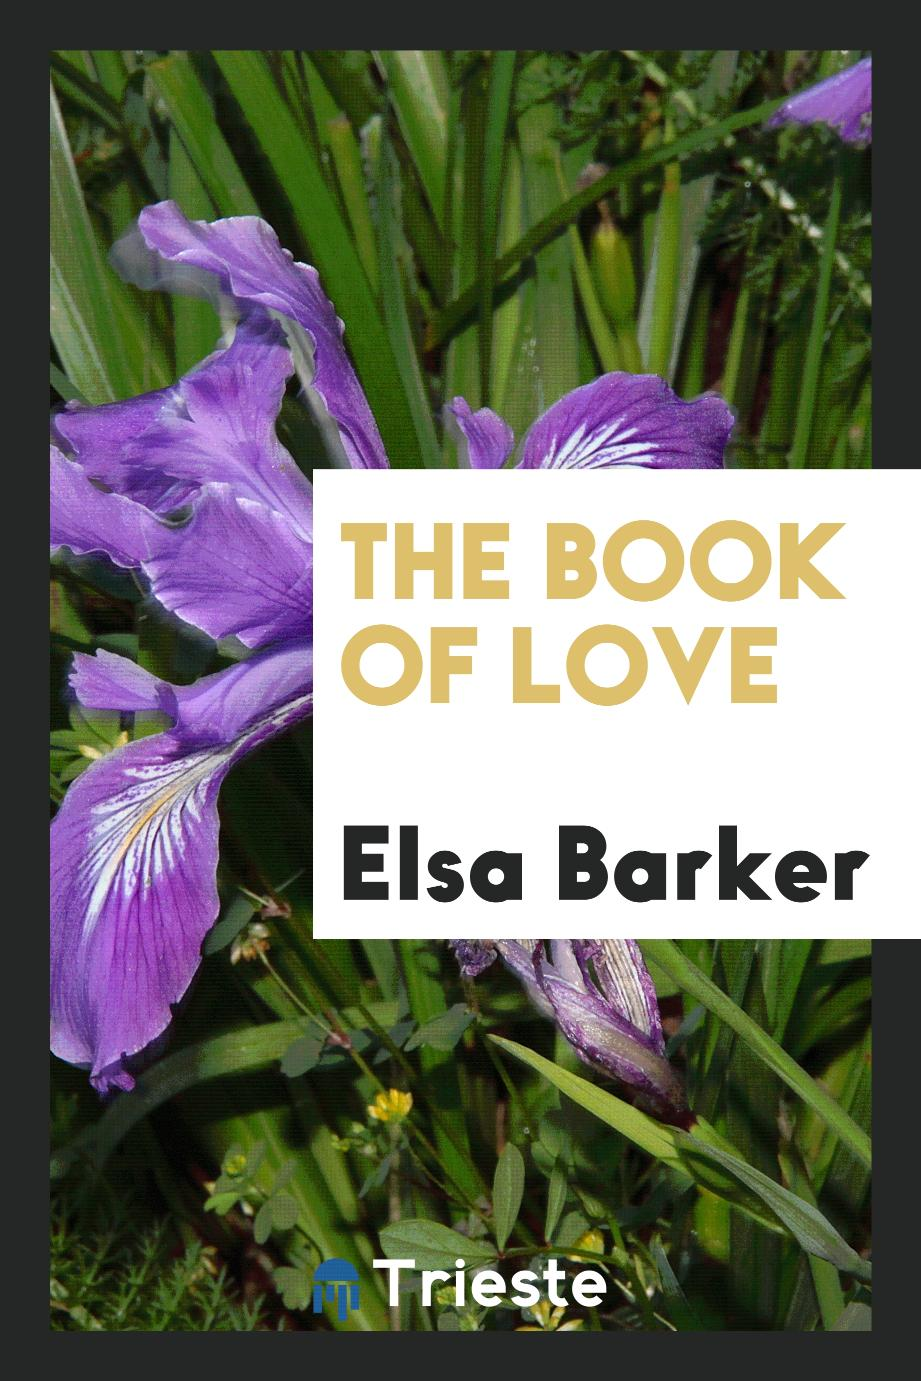 Elsa Barker - The book of love